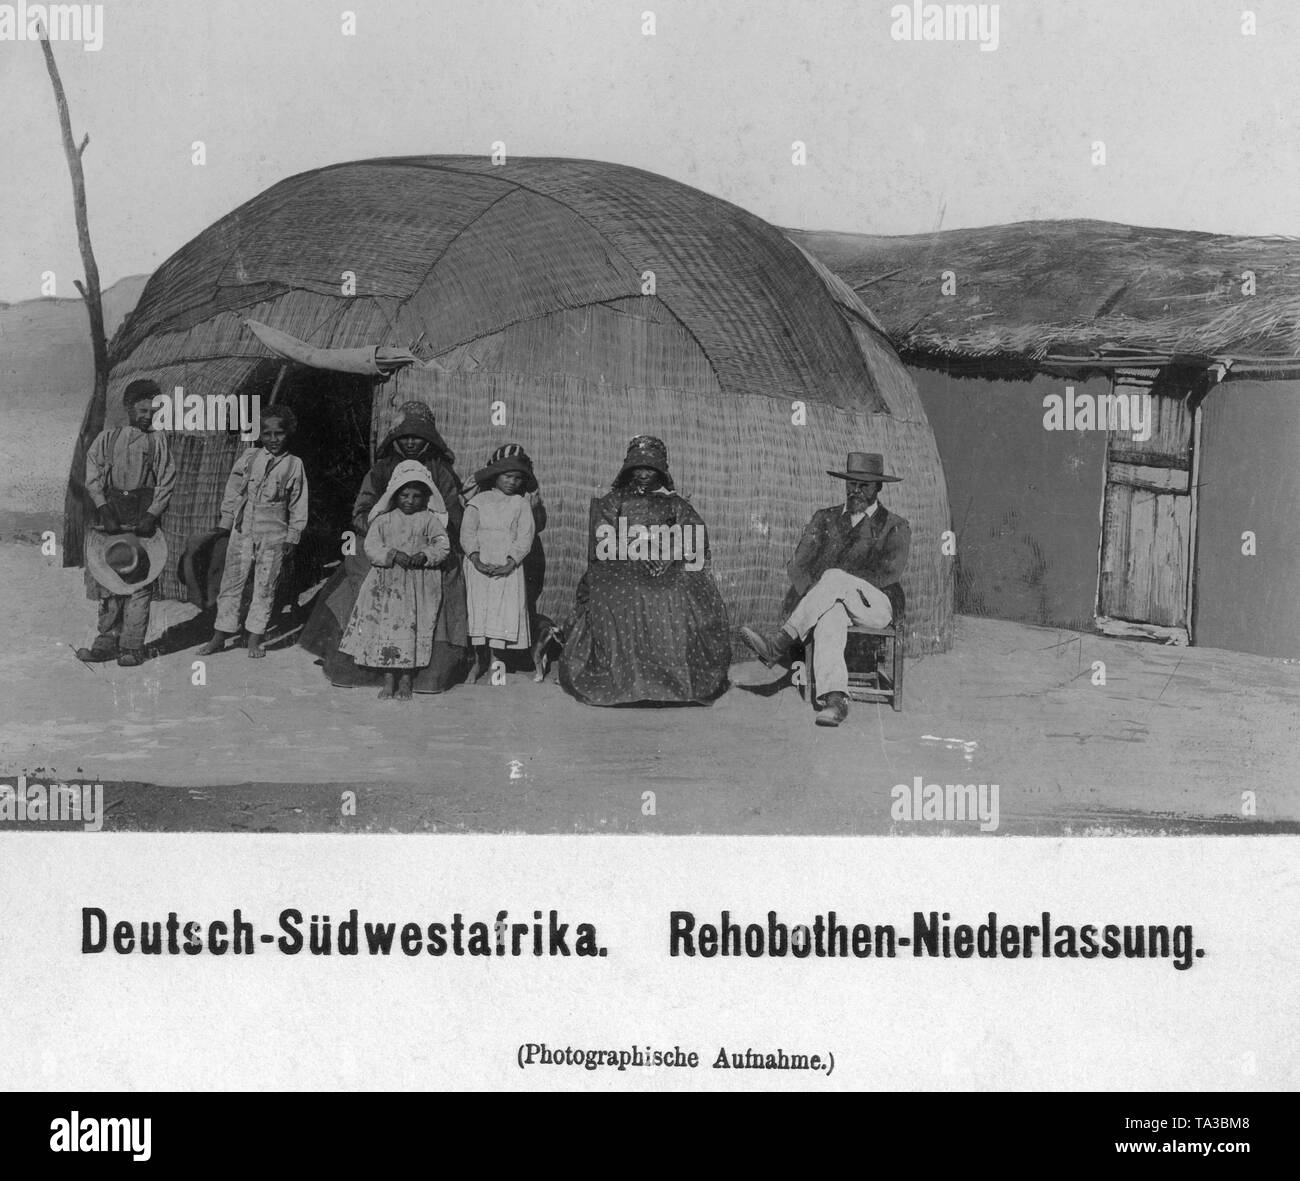 Group of Rehobothers in European clothes in front of a pondok in German Southwest Africa (undated shot). - Stock Image